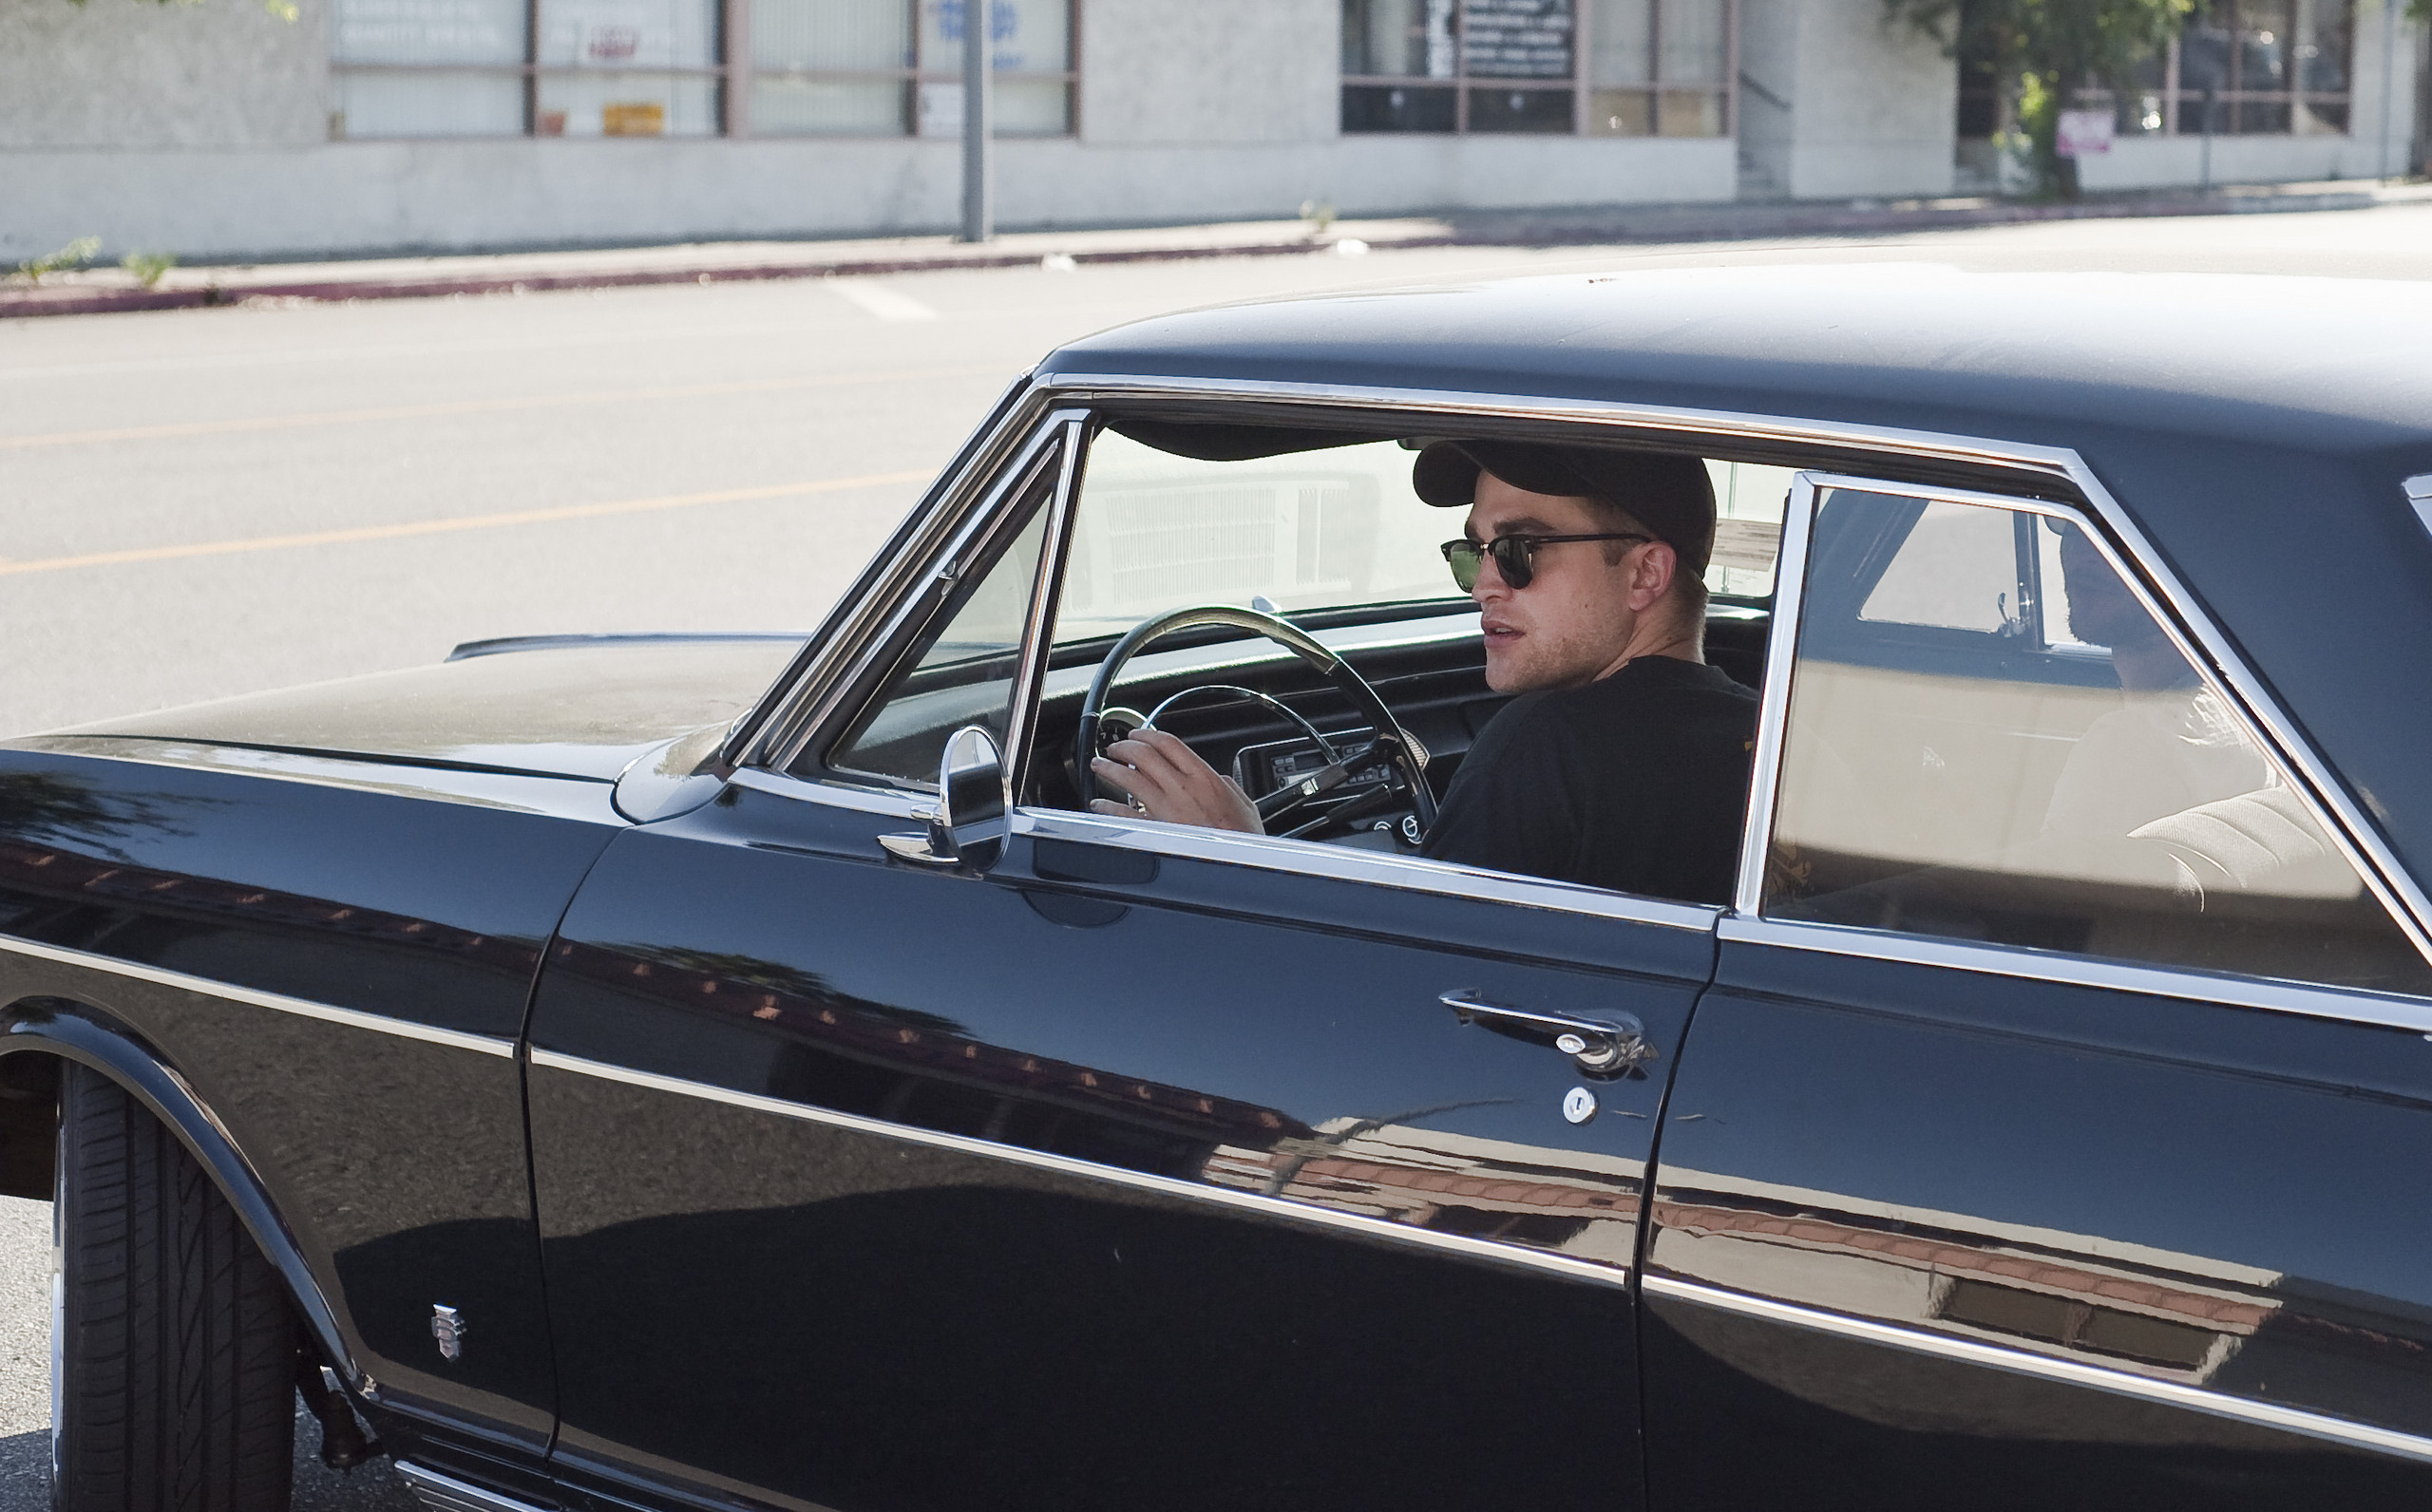 Rob and Tom drivin around in an old Chevy - July 17th, 2010